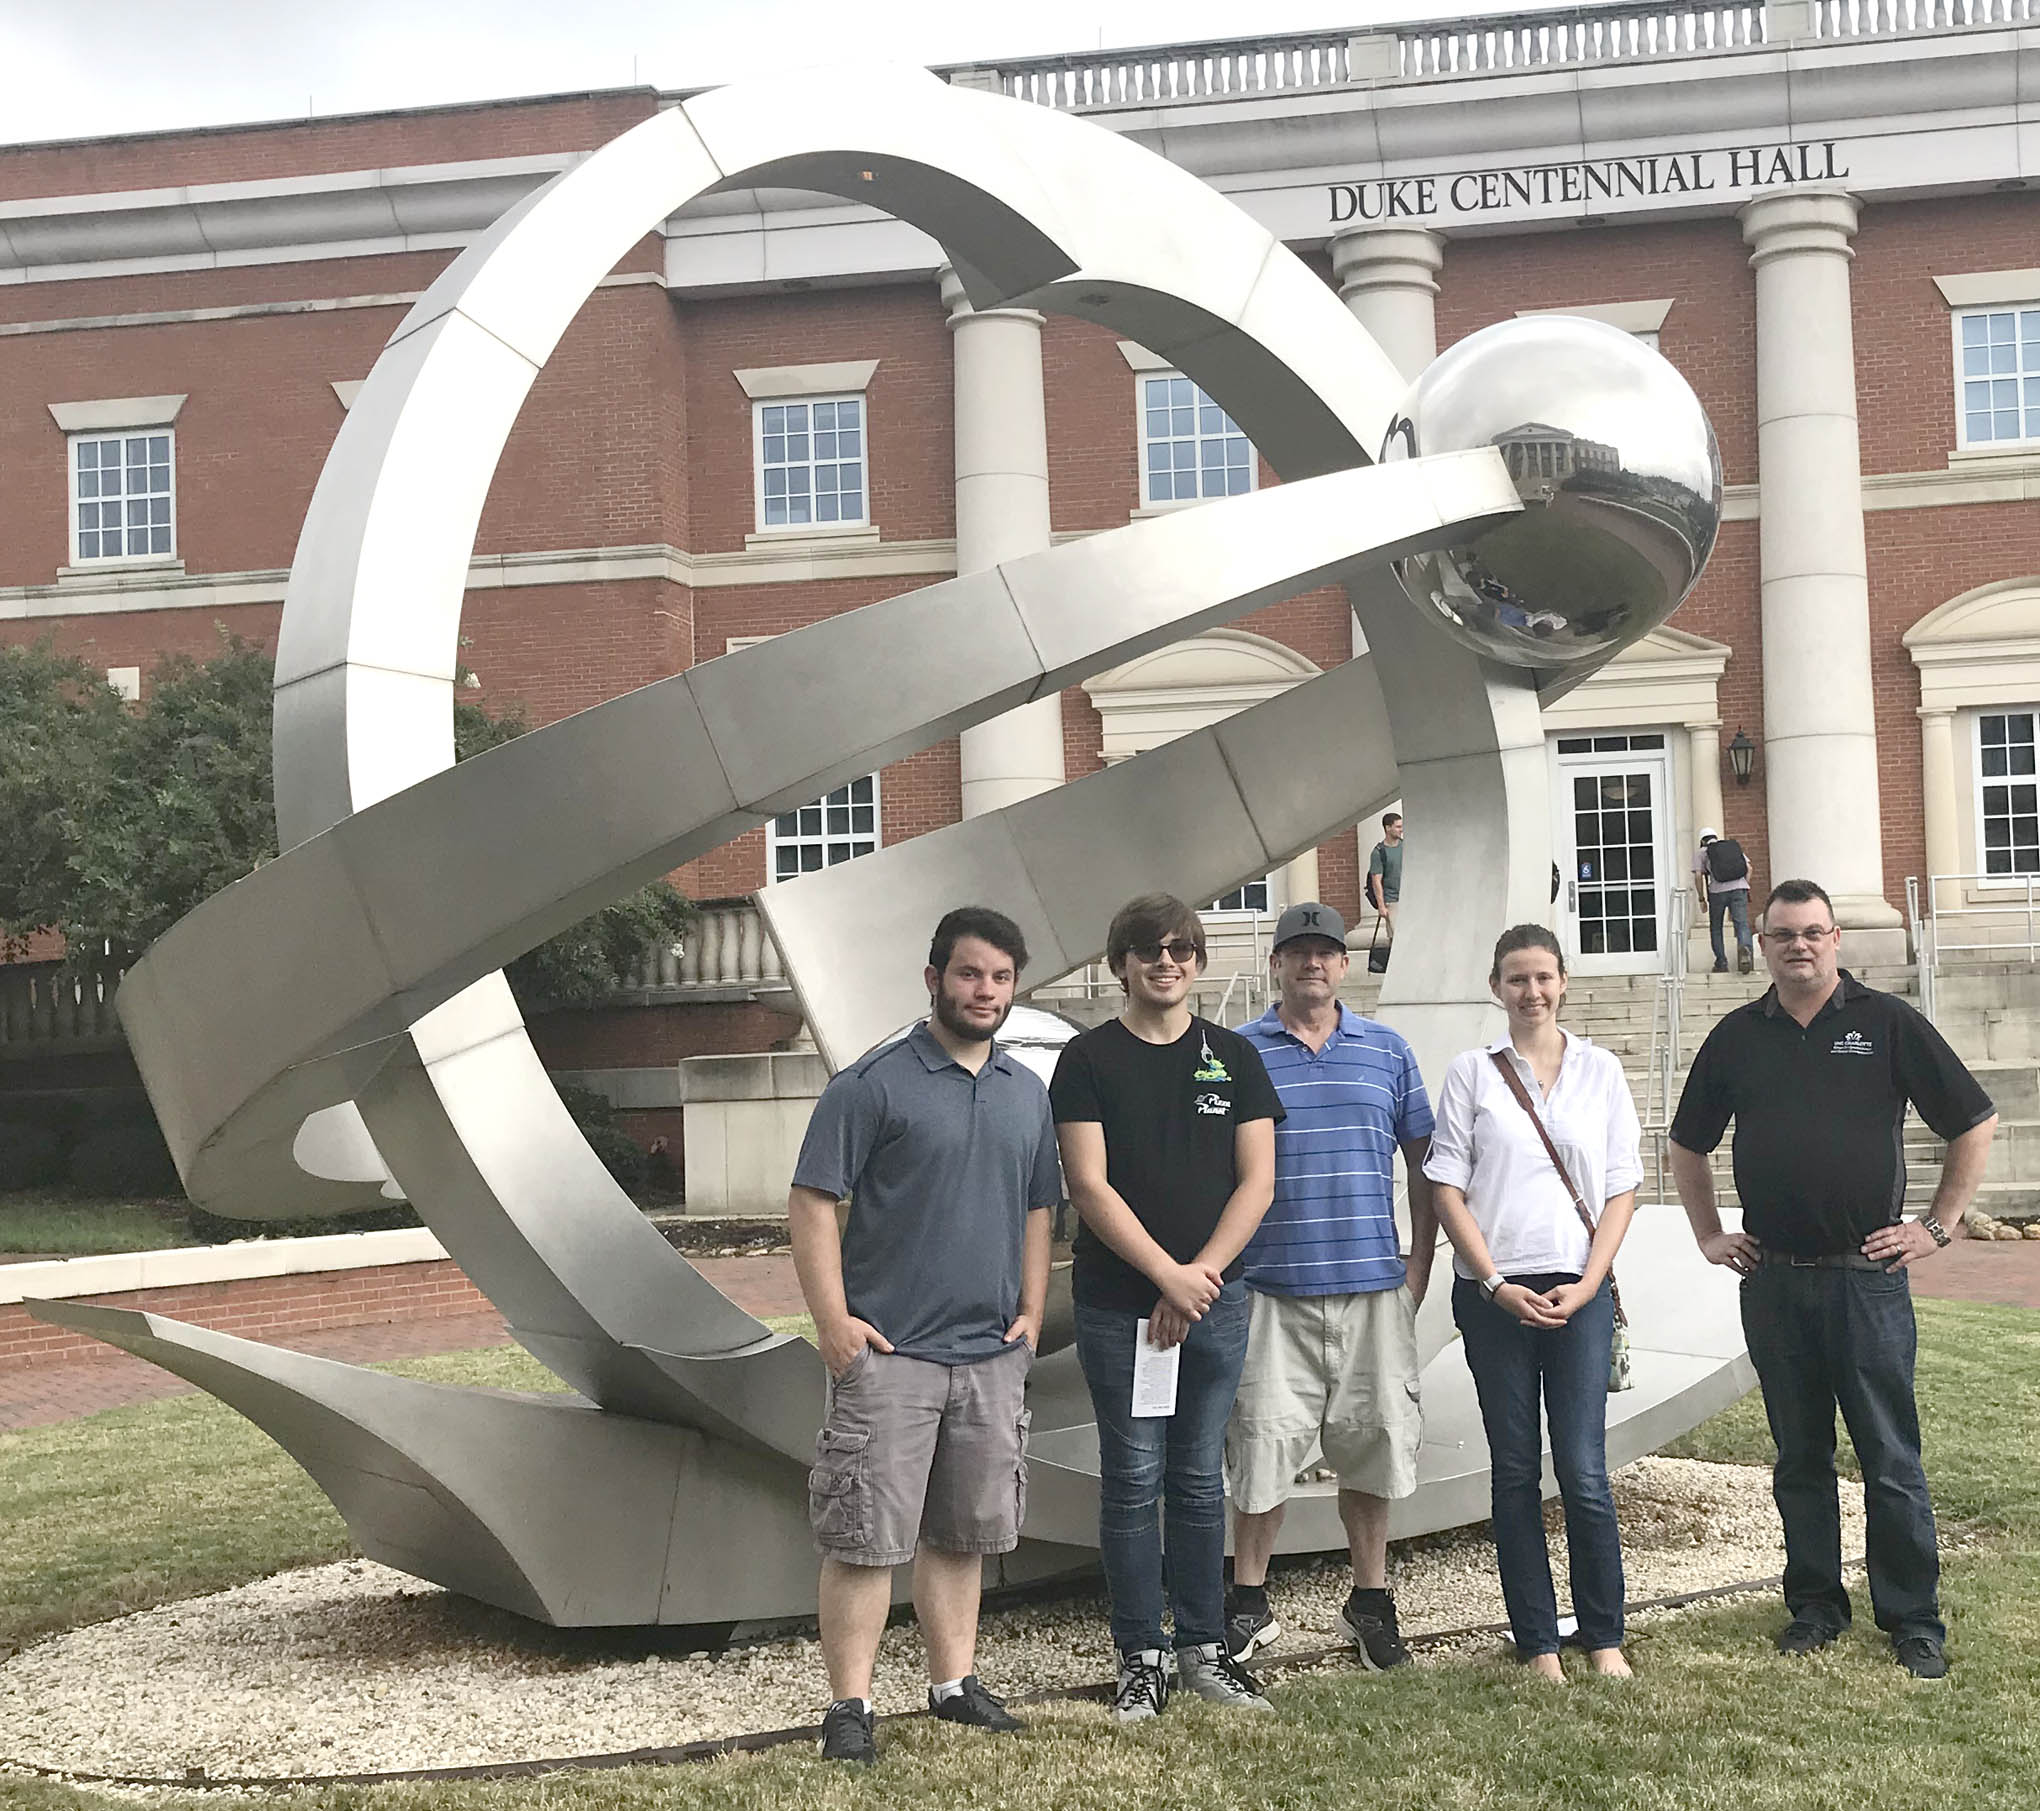 Click to enlarge,  Touring the Optics Research Center on the University of North Carolina at Charlotte's campus were, left to right: Cameron Wiedholz, Jamie Turner, Robert Strickland, Isabelle Karis, and Scott Williams (Assistant Director of the Center, who is an advisor to the CCCC LPT program).